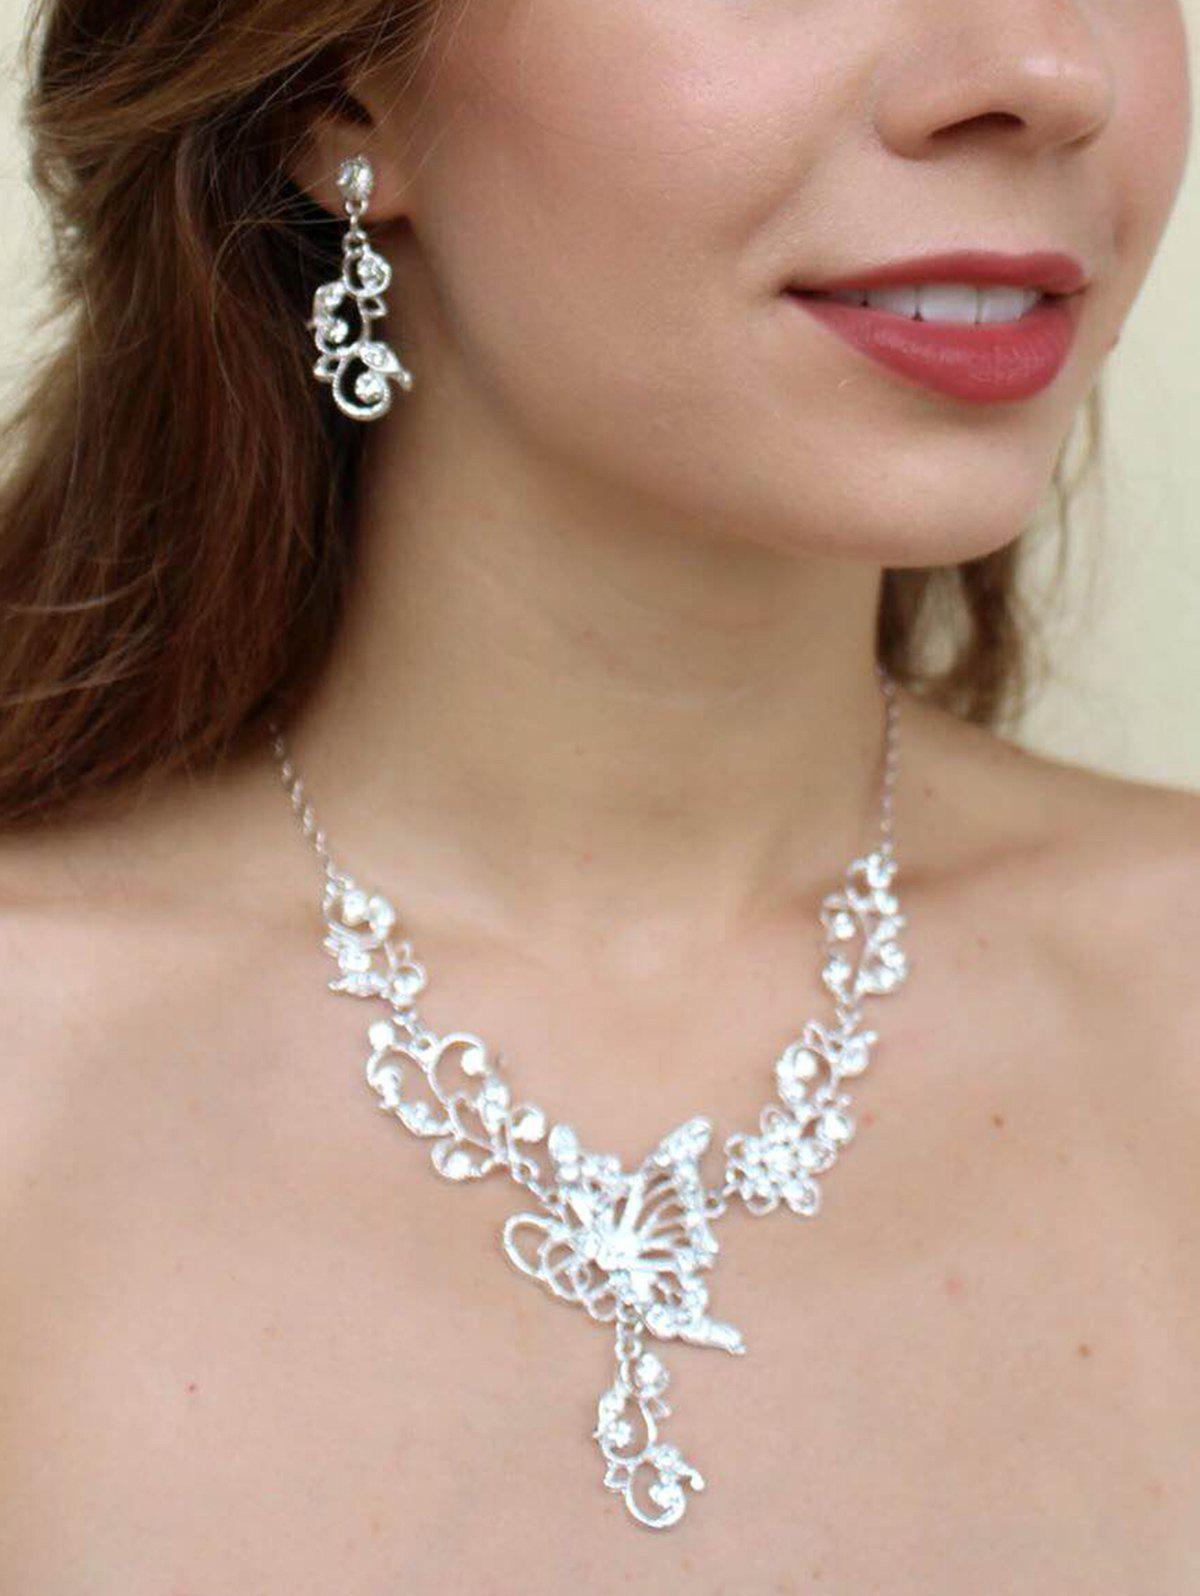 Diamante Butterfly Pendant Flower Embellished Necklace and Earrings - AS THE PICTURE